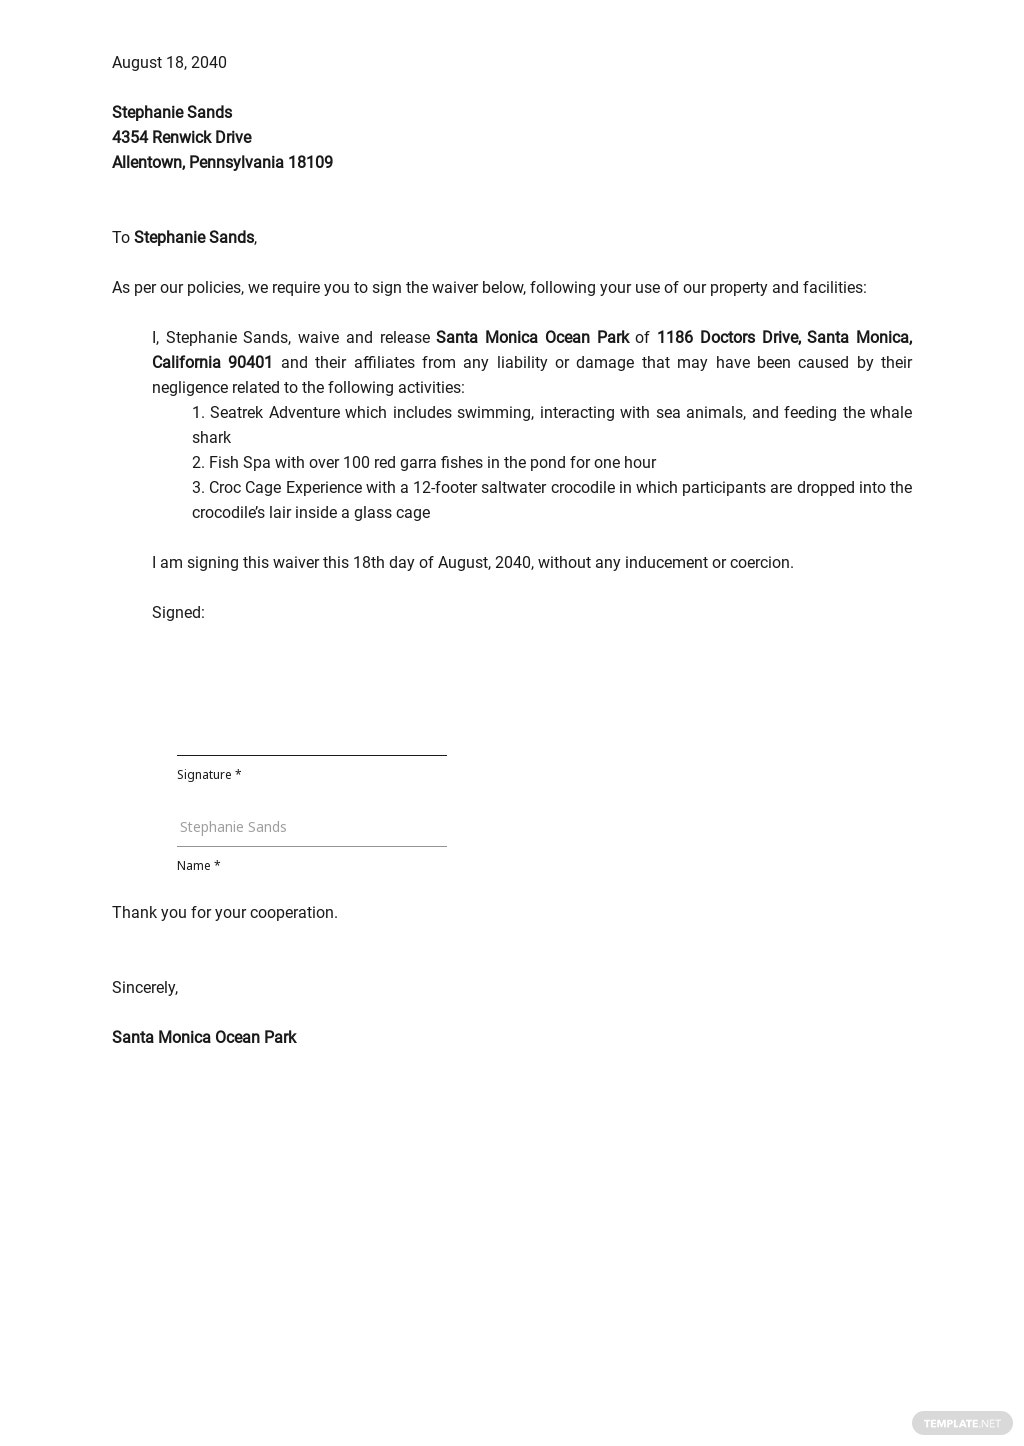 Property Waiver Letter Template.jpe